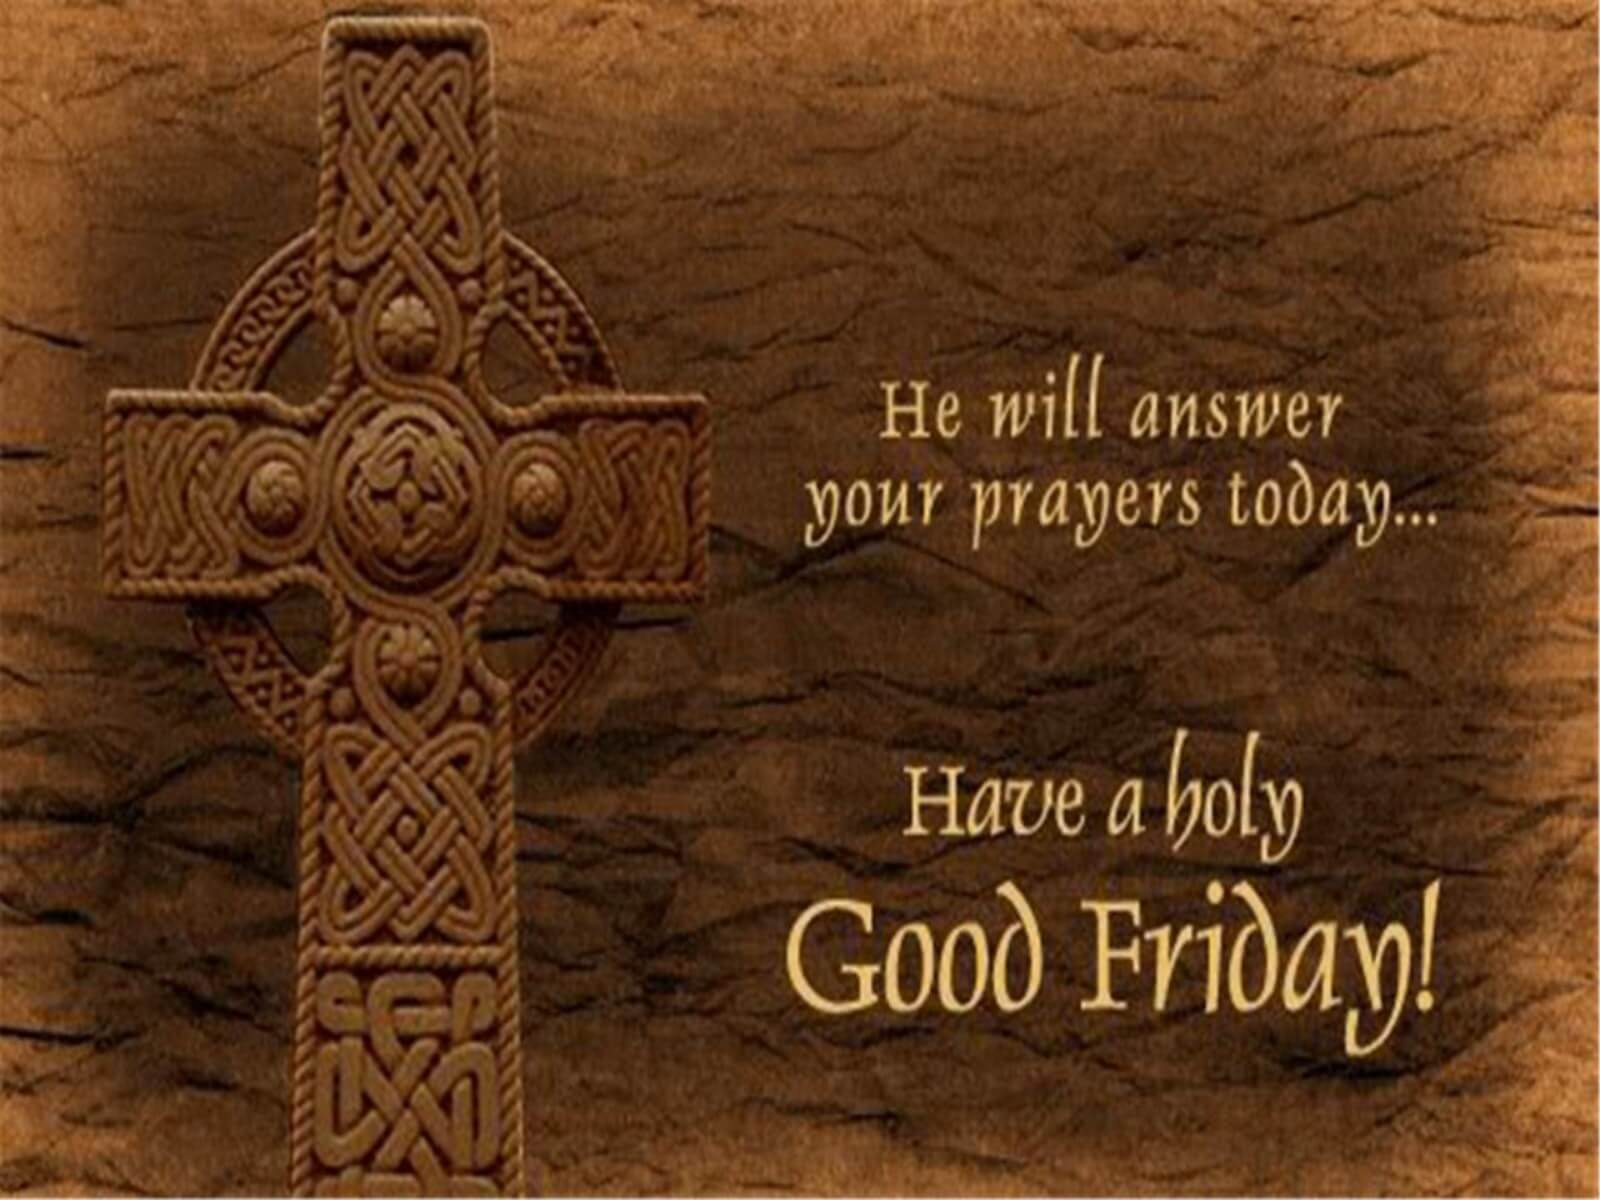 good Friday quotes and images Whatsapp Status Facebook (12)